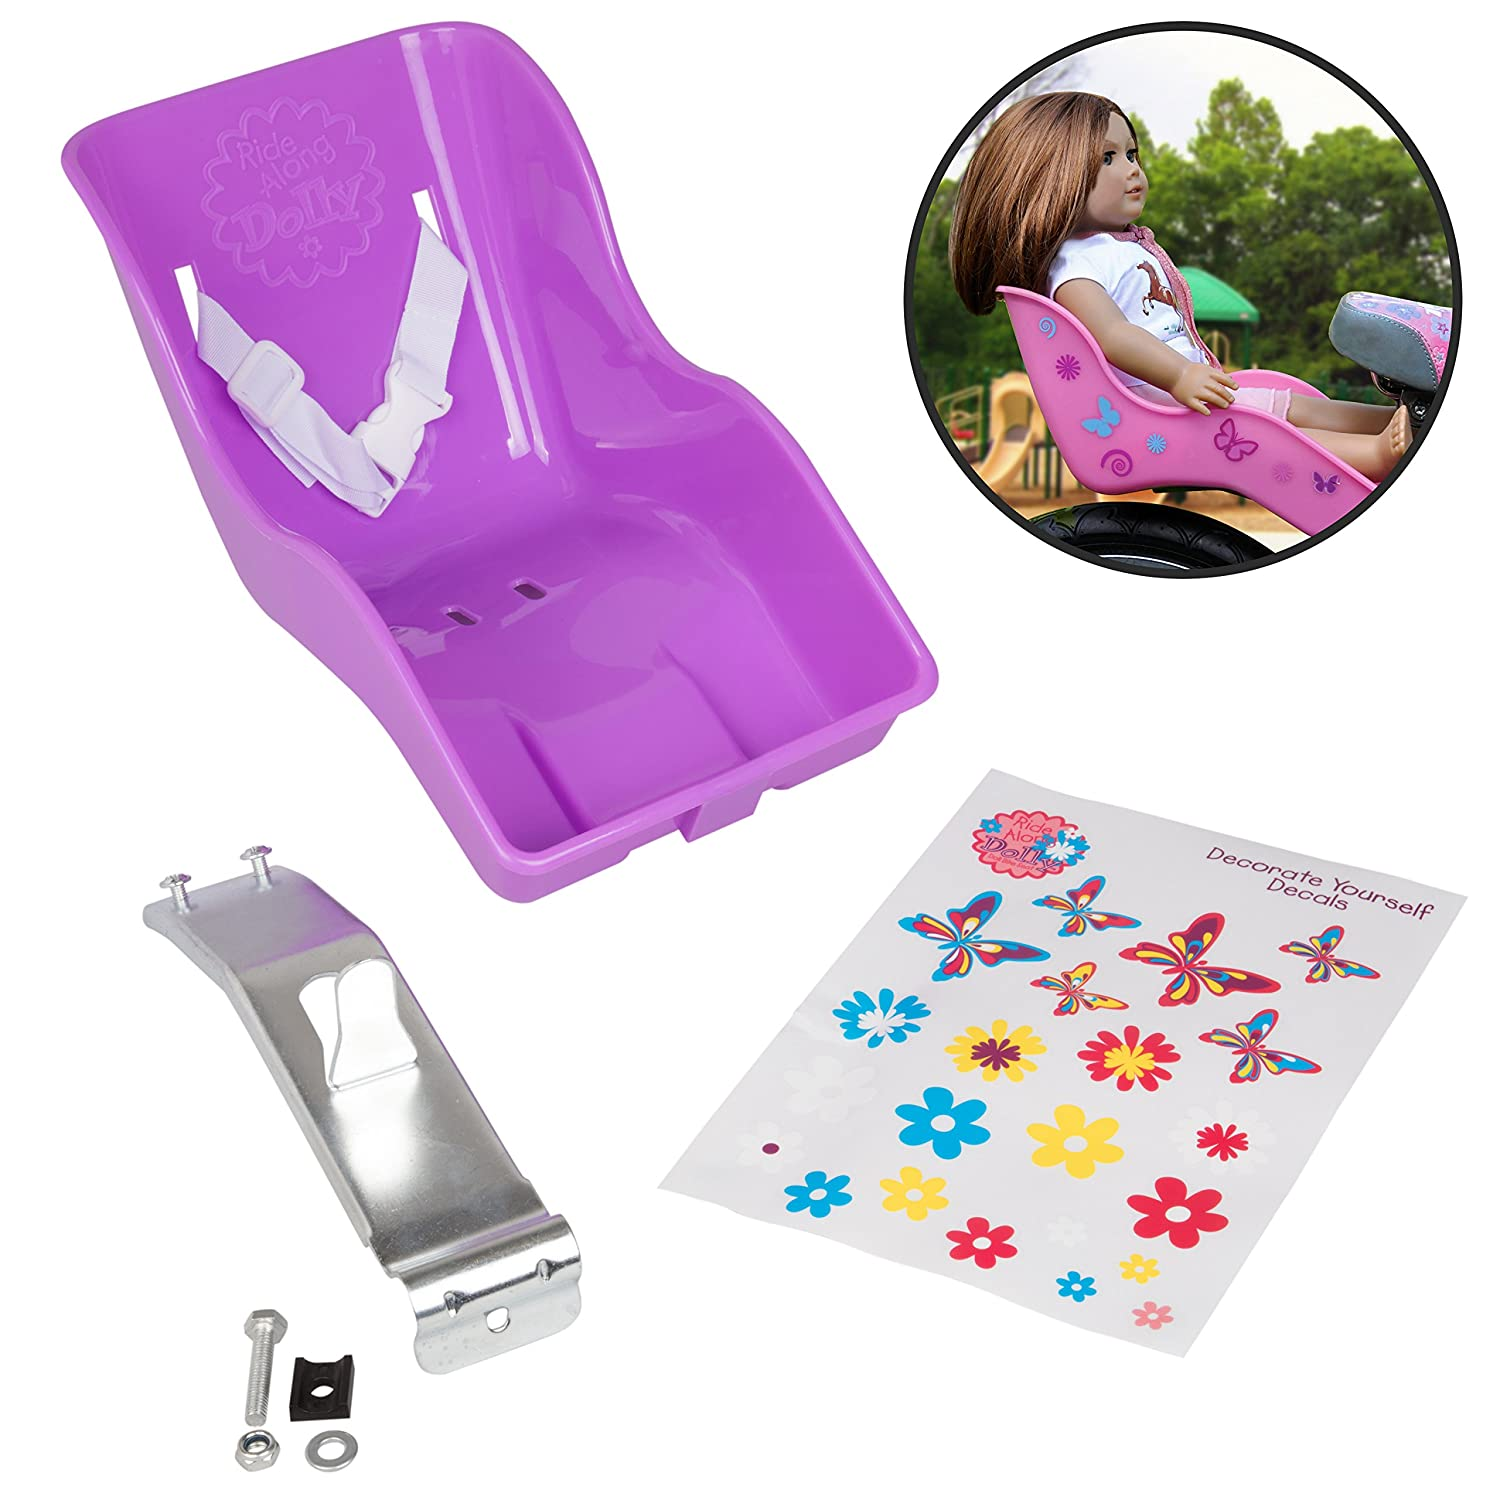 Purple Ride Along Dolly Doll Bicycle Seat Bike Seat with Decorate Yourself Decals Fits American Girl and Stuffed Animals